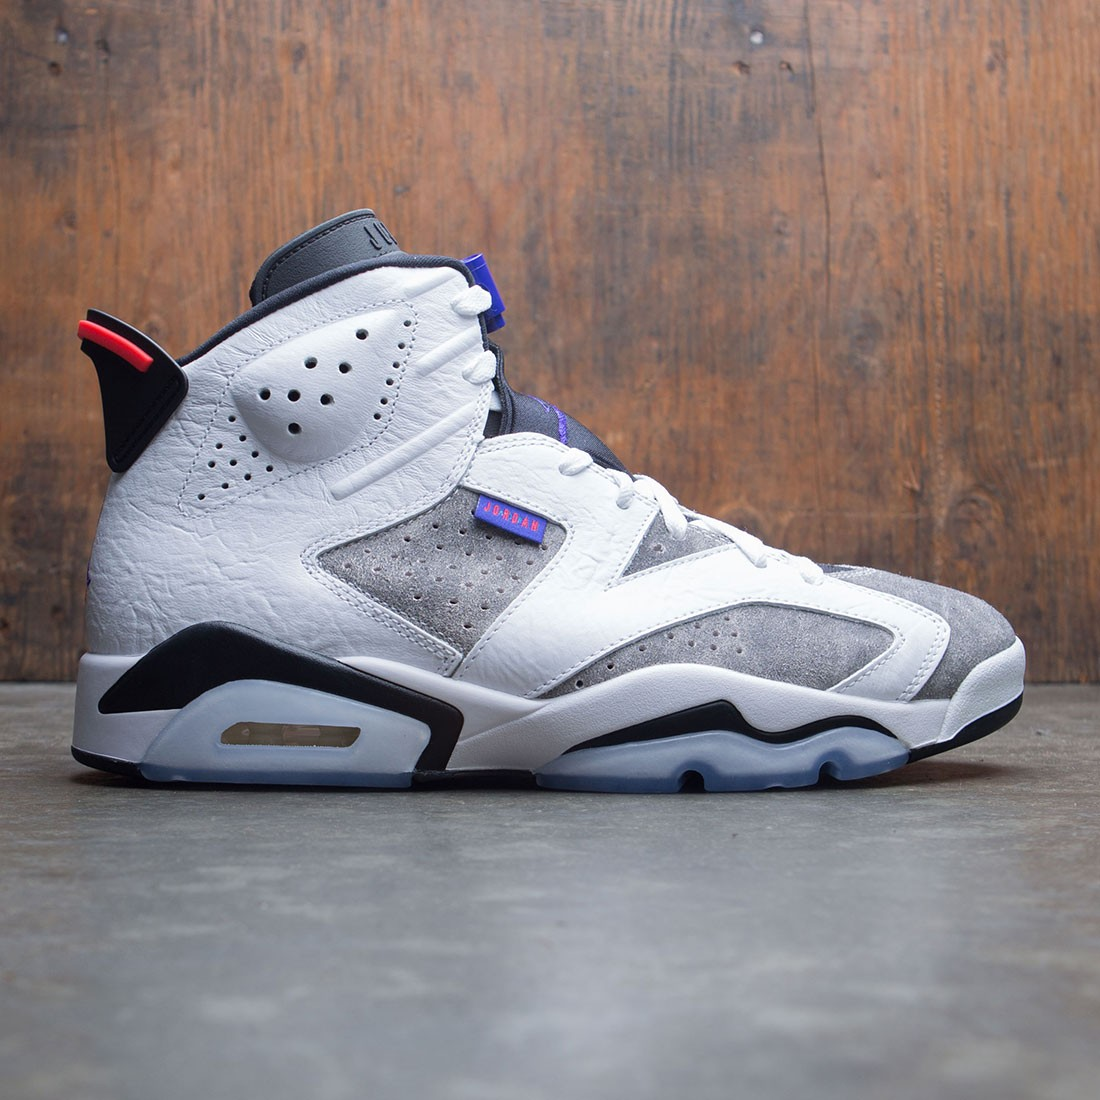 timeless design eb3de 25396 jordan men air jordan 6 retro ltr white dark concord black infrared 23